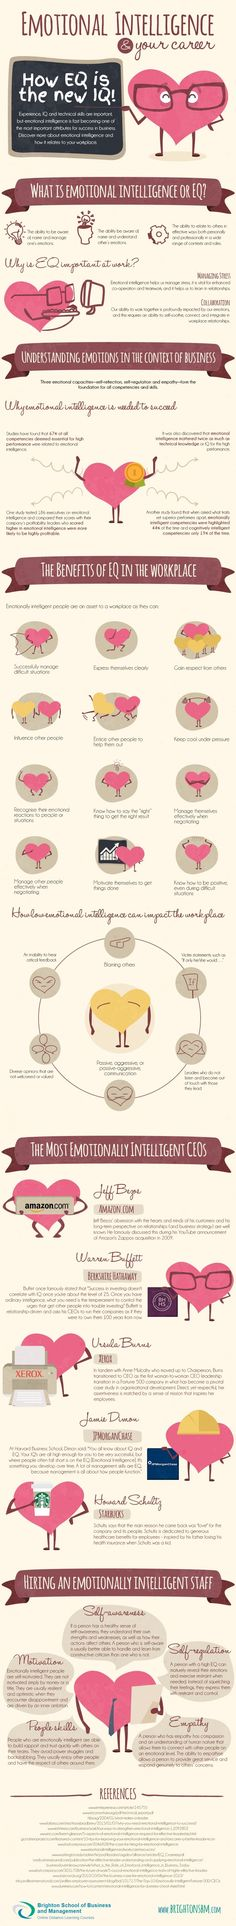 Emotional Intelligence and Your Career #Infographic #Career